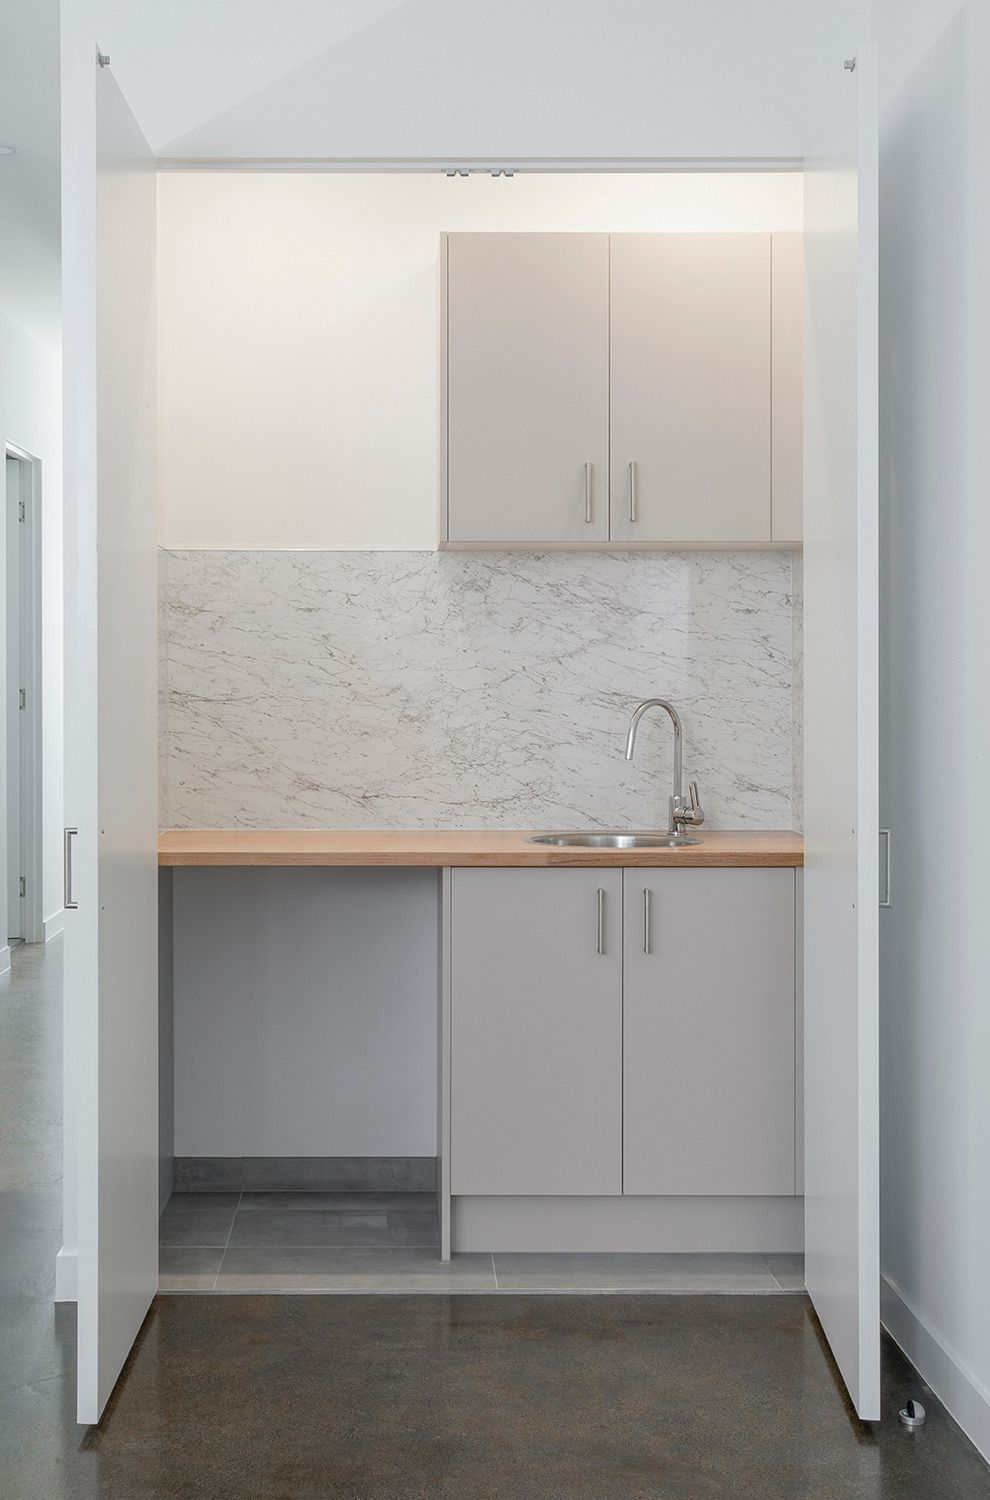 Stuck For Space A Built In Laundry Might Be Exactly What You Need A Great Solution For Apartments Or Townhous Diy Laundry Laundry Design Laundry Room Remodel